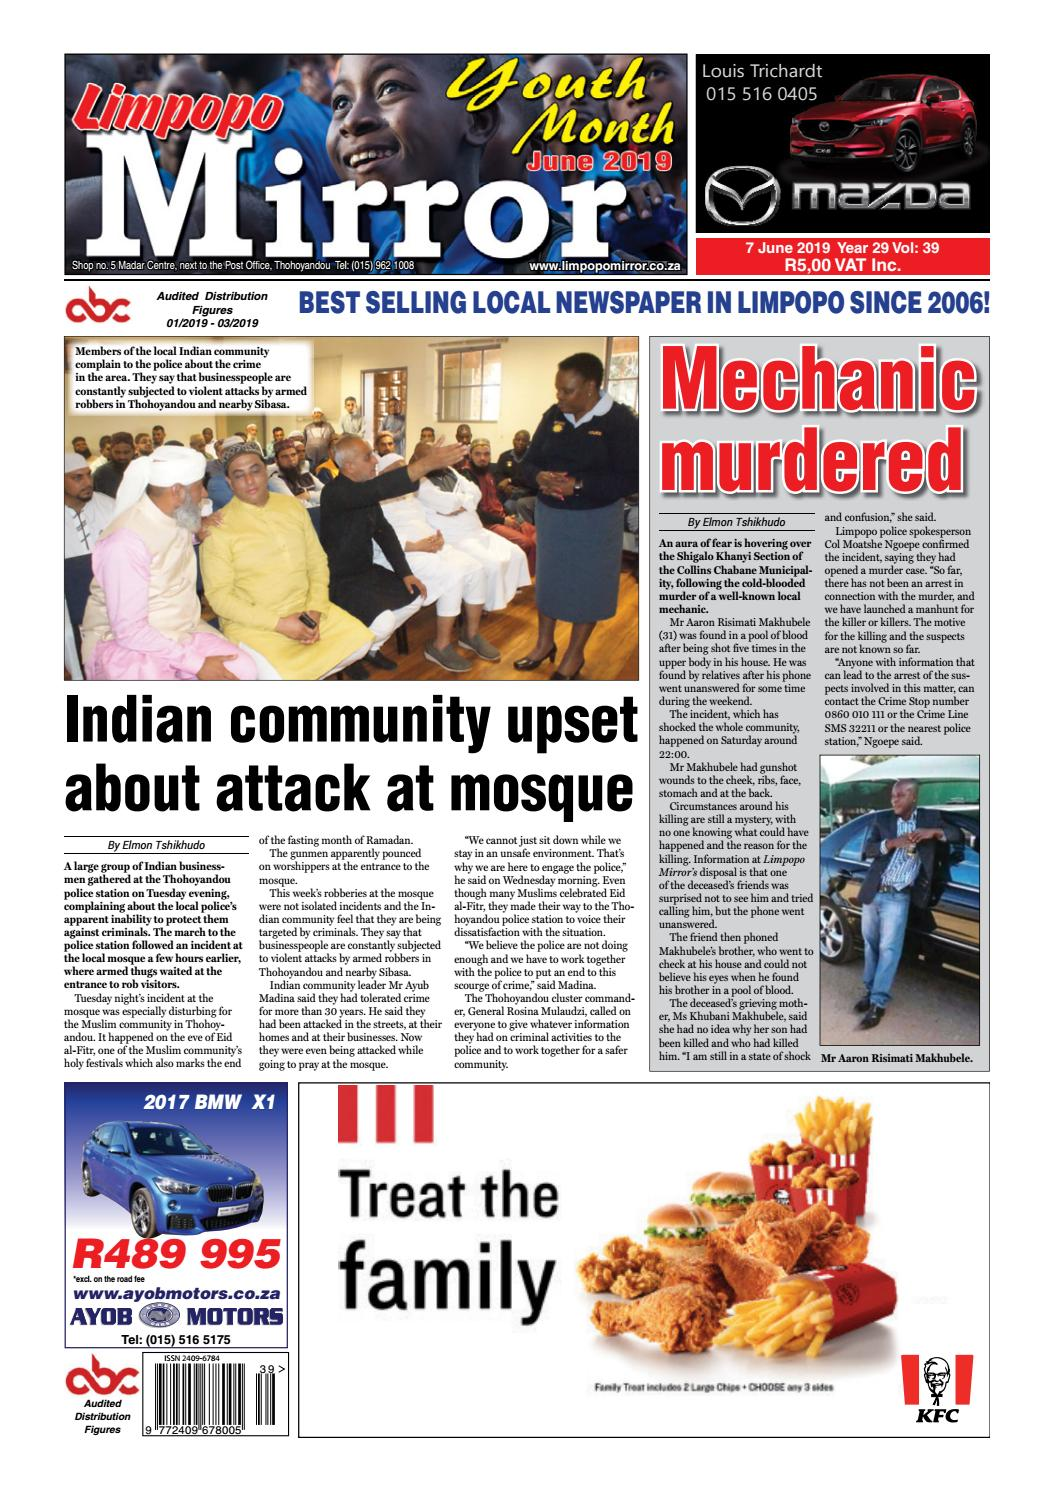 Limpopo Mirror 7 June 2019 by Zoutnet - issuu